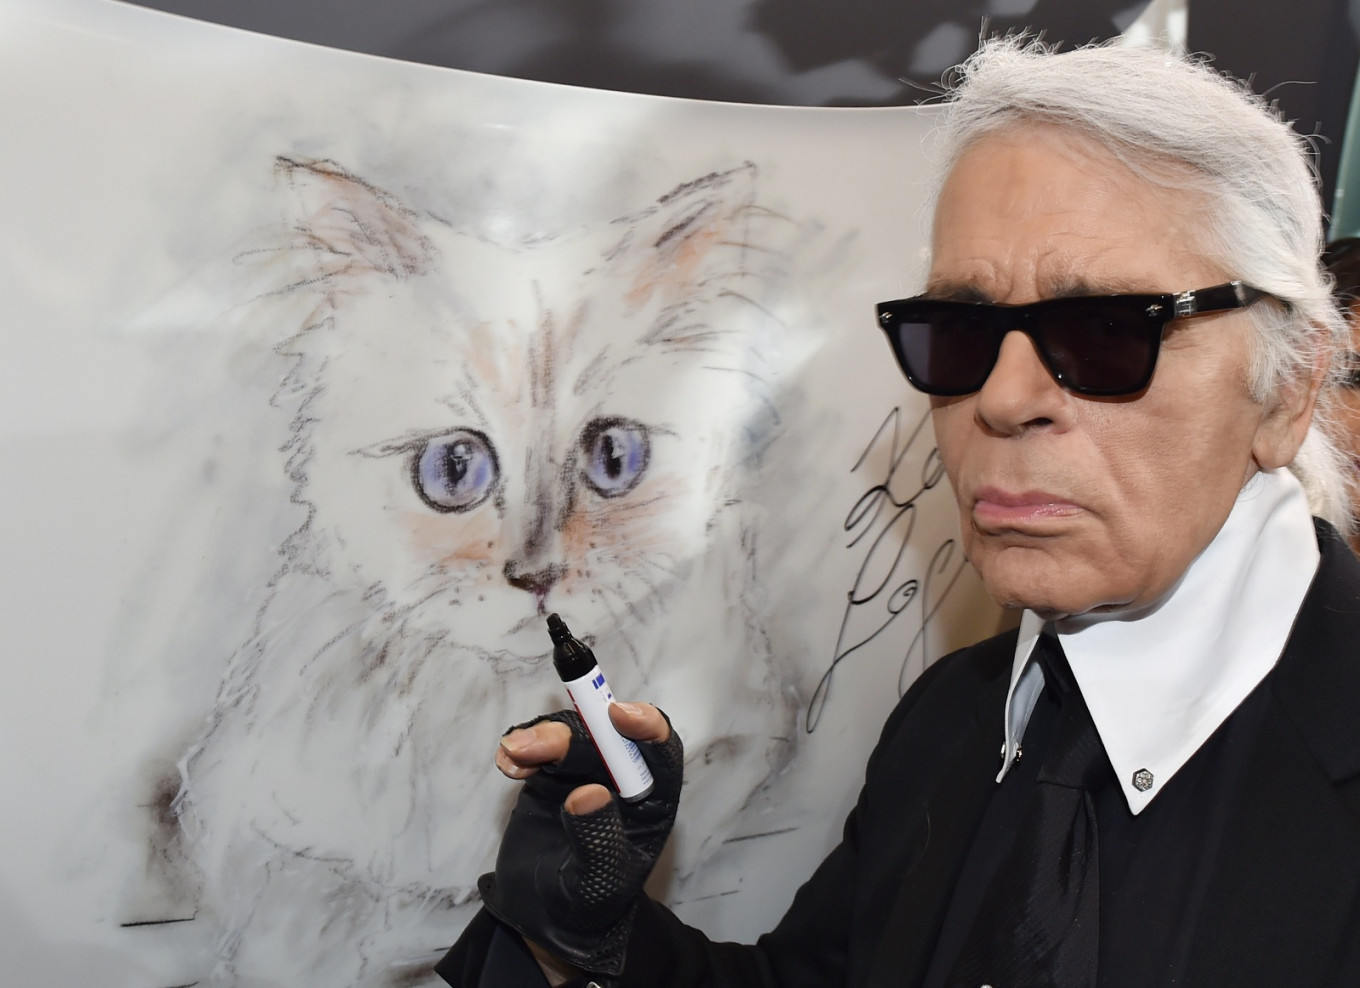 HarperCollins to publish 'an unconventional biography' of Karl Lagerfeld